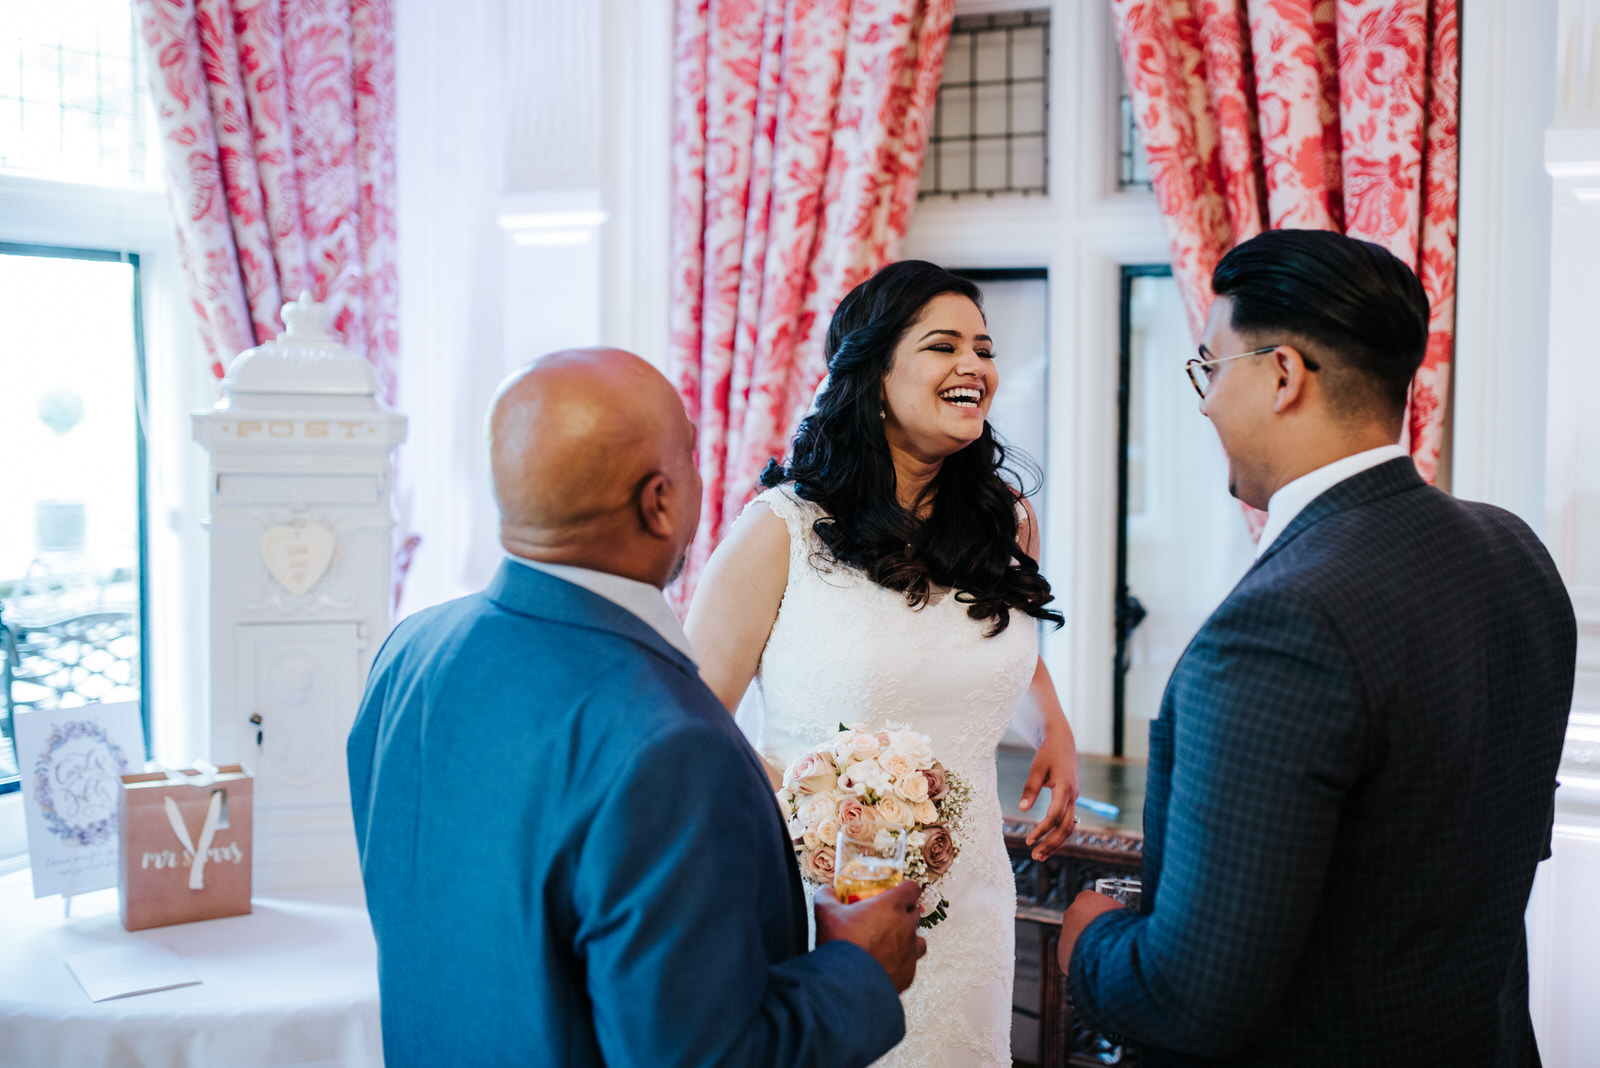 Bride smiles and jokes with family members during wedding recept